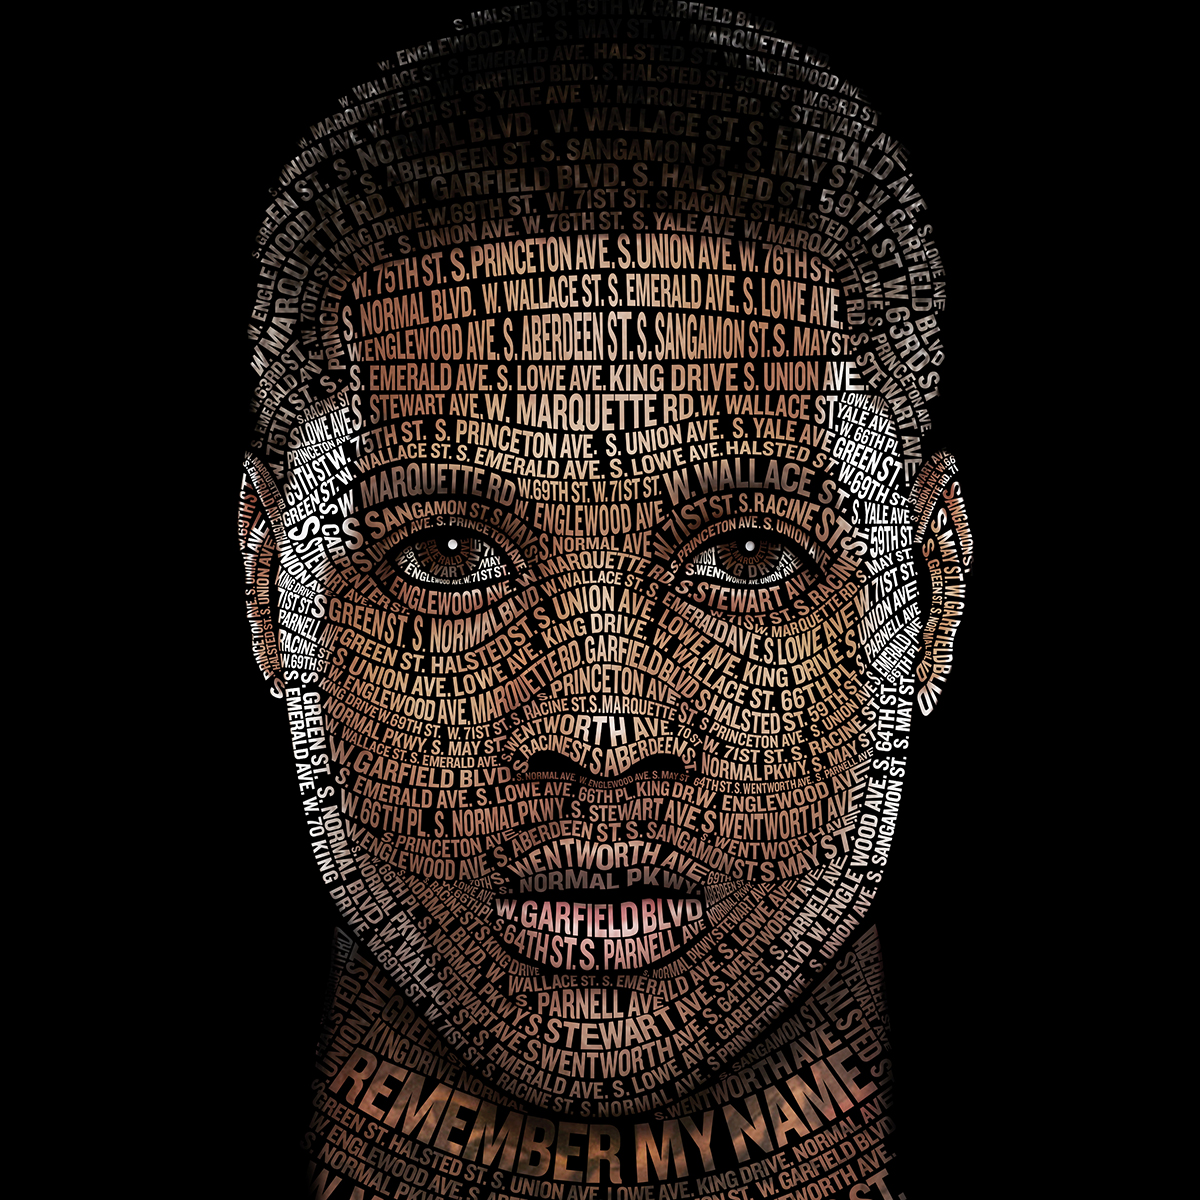 remembermynamecover Lil Durk: Bringing Chicago a New Name